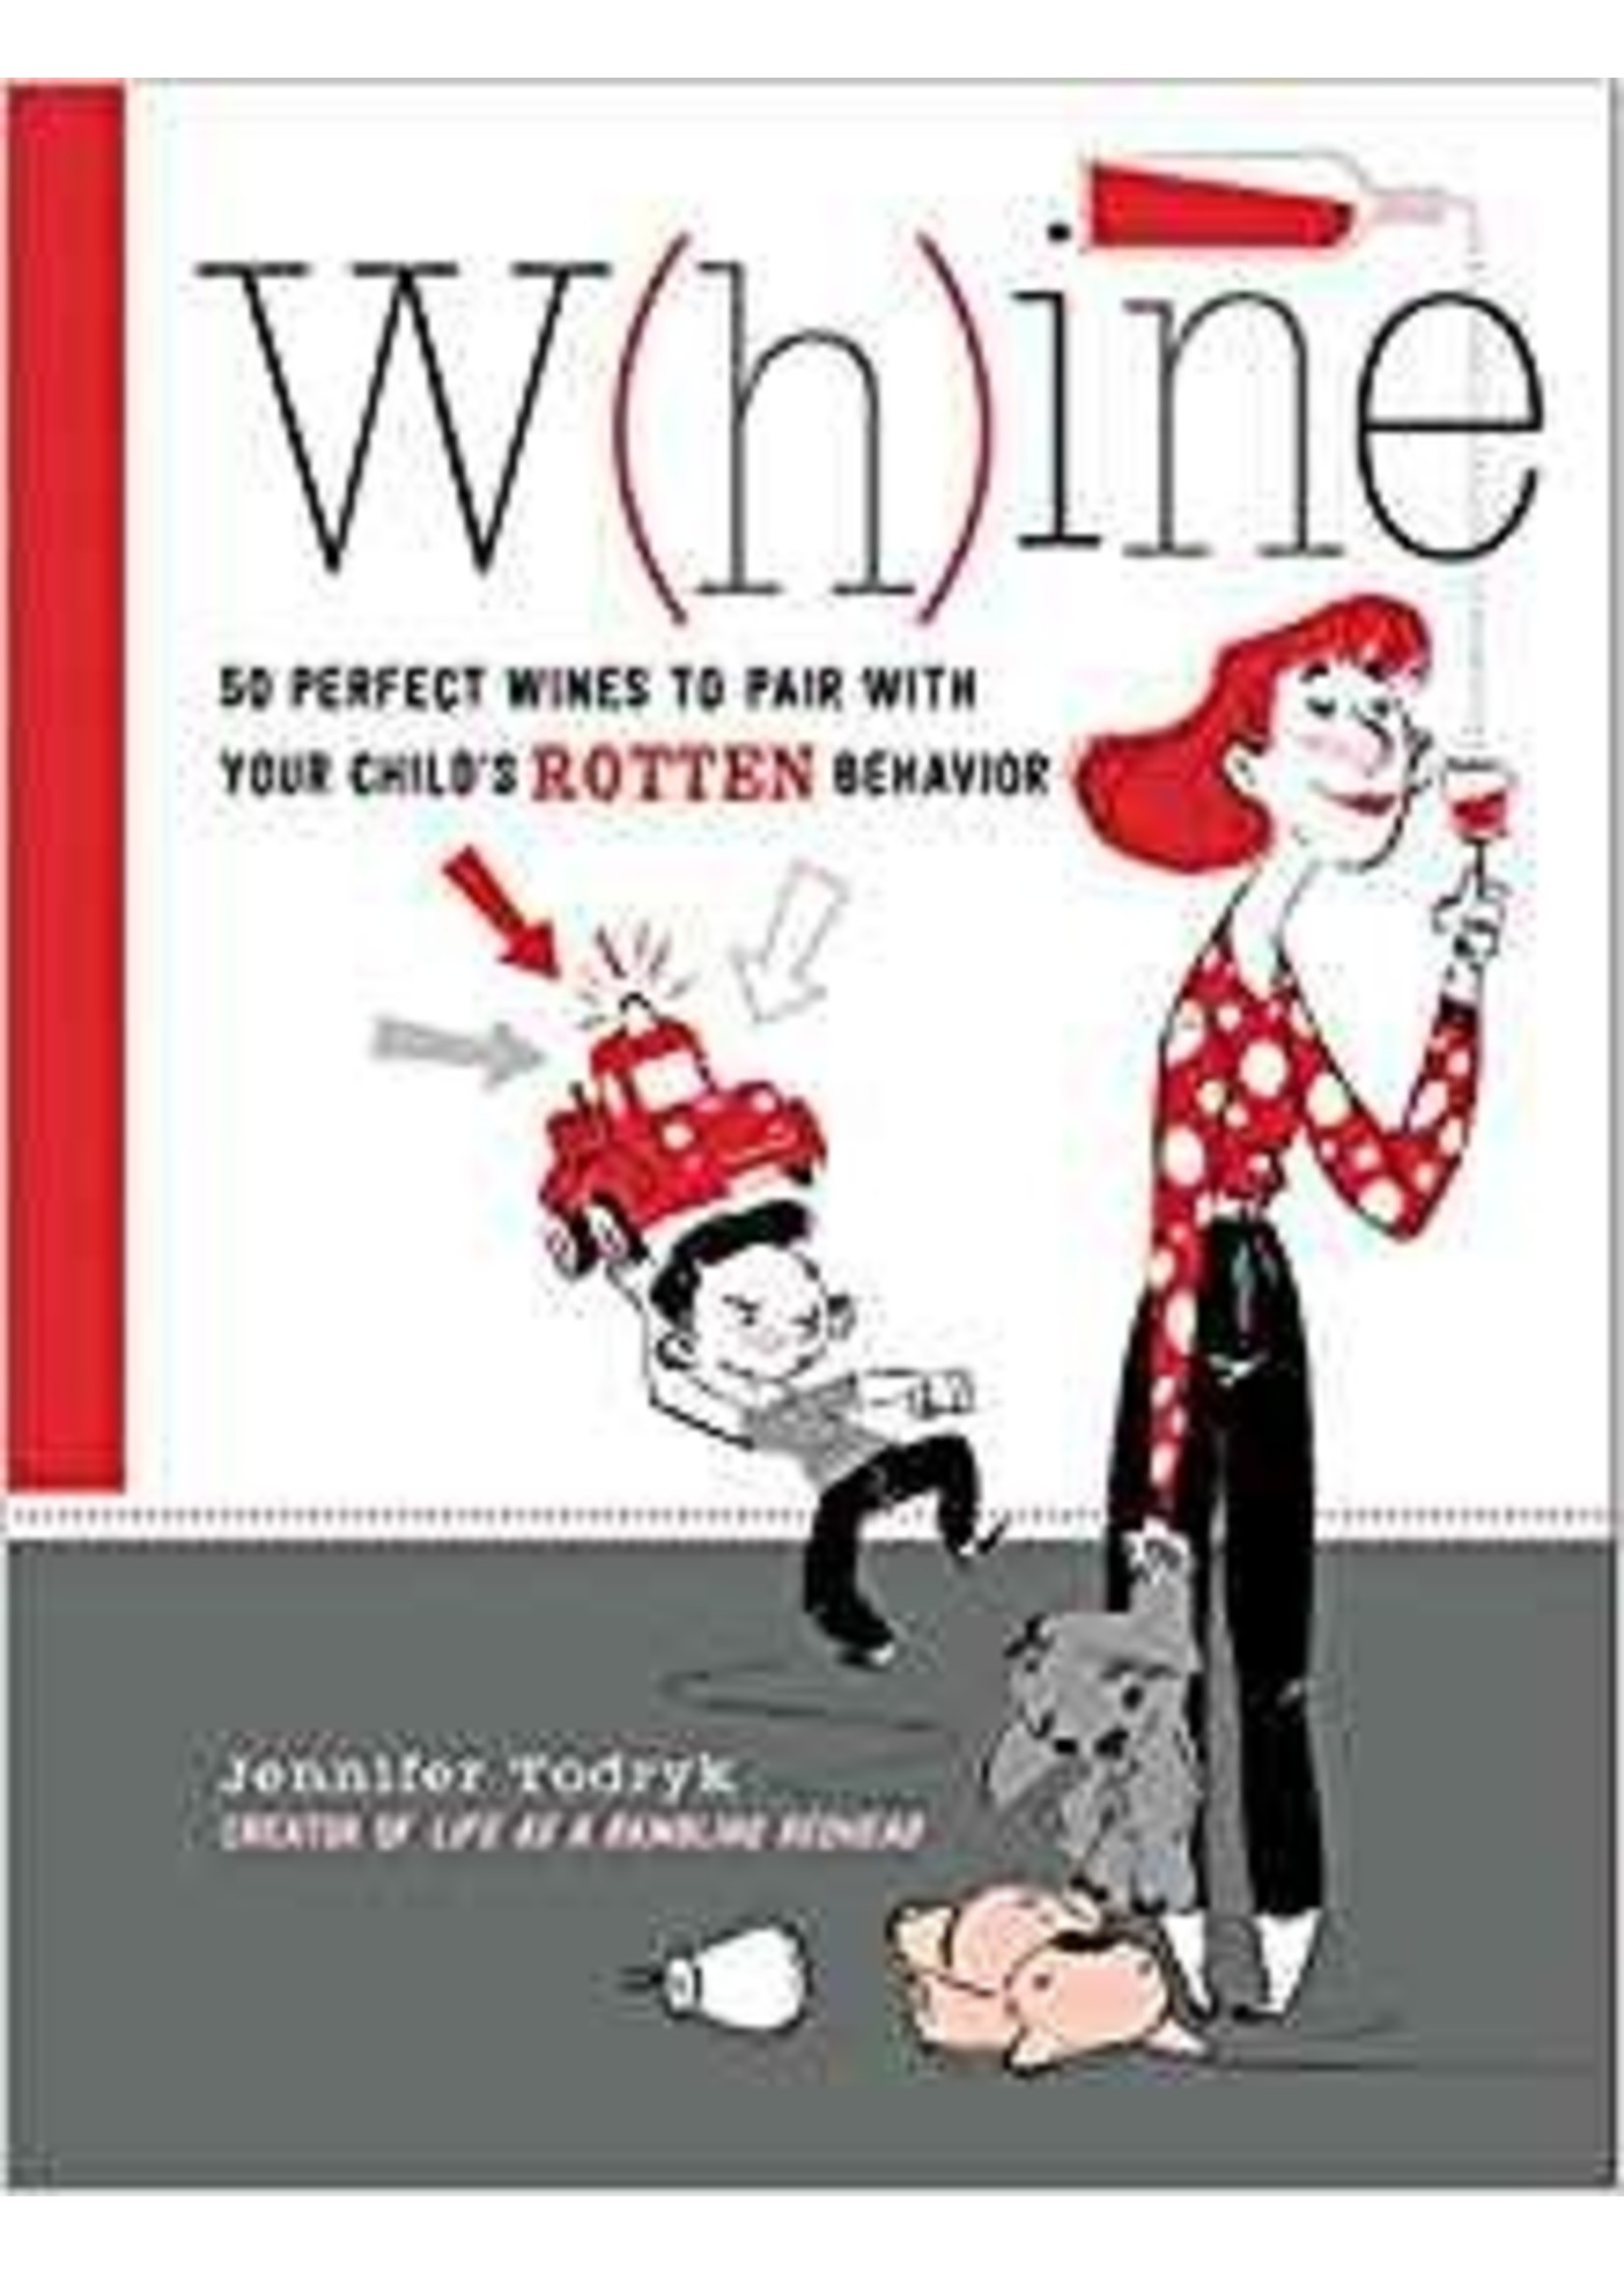 Whine: 50 Perfect W(h)ines